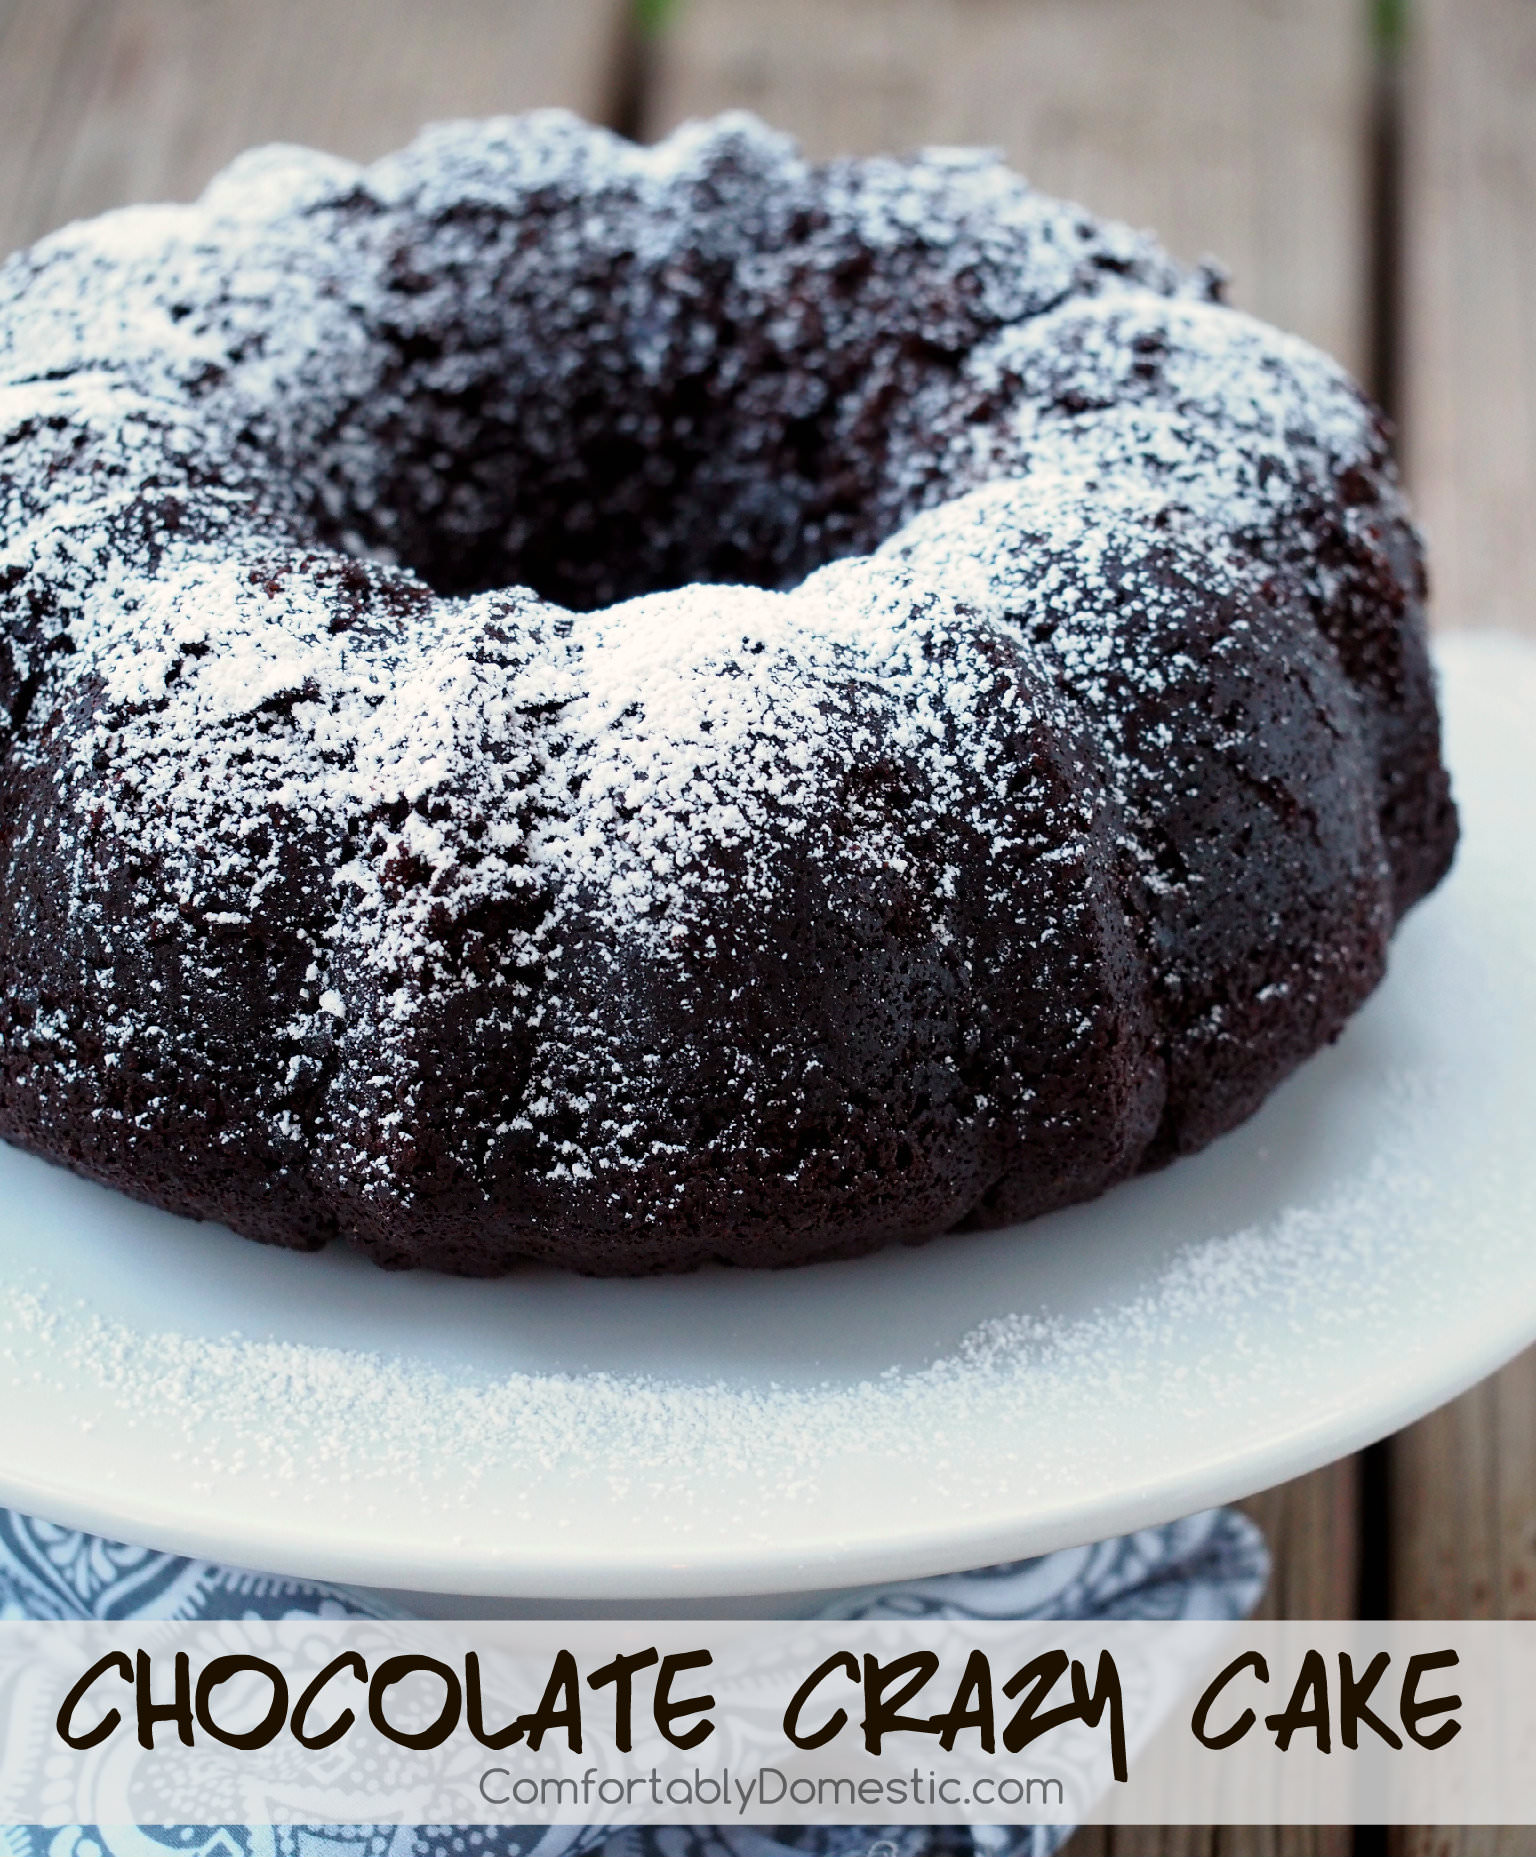 Chocolate Crazy Cake - A sinfully decadent chocolate cake made from scratch that comes together in a jiffy. The recipe is a little crazy because it's made without eggs, and yet the resulting cake is still rich with a tender crumb. | ComfortablyDomestic.com